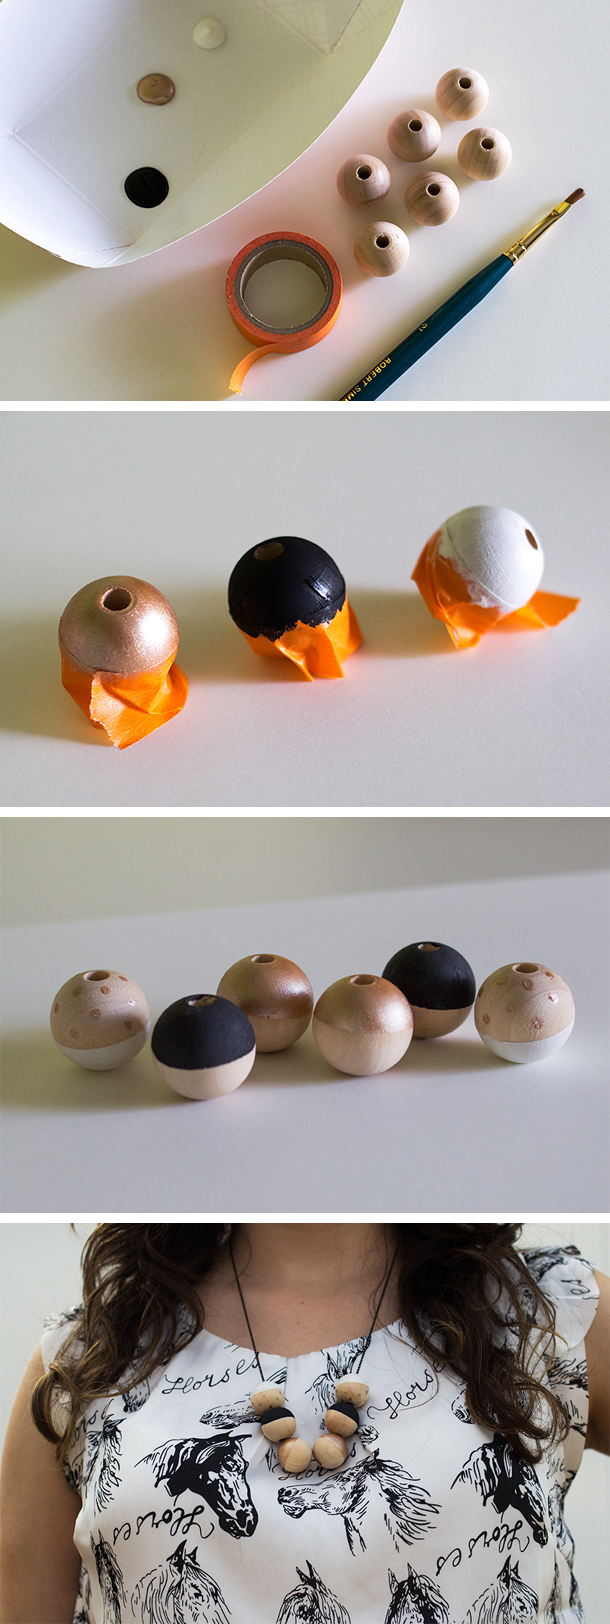 DIY Painted Wood Bead Necklaces with Bing Smart Search